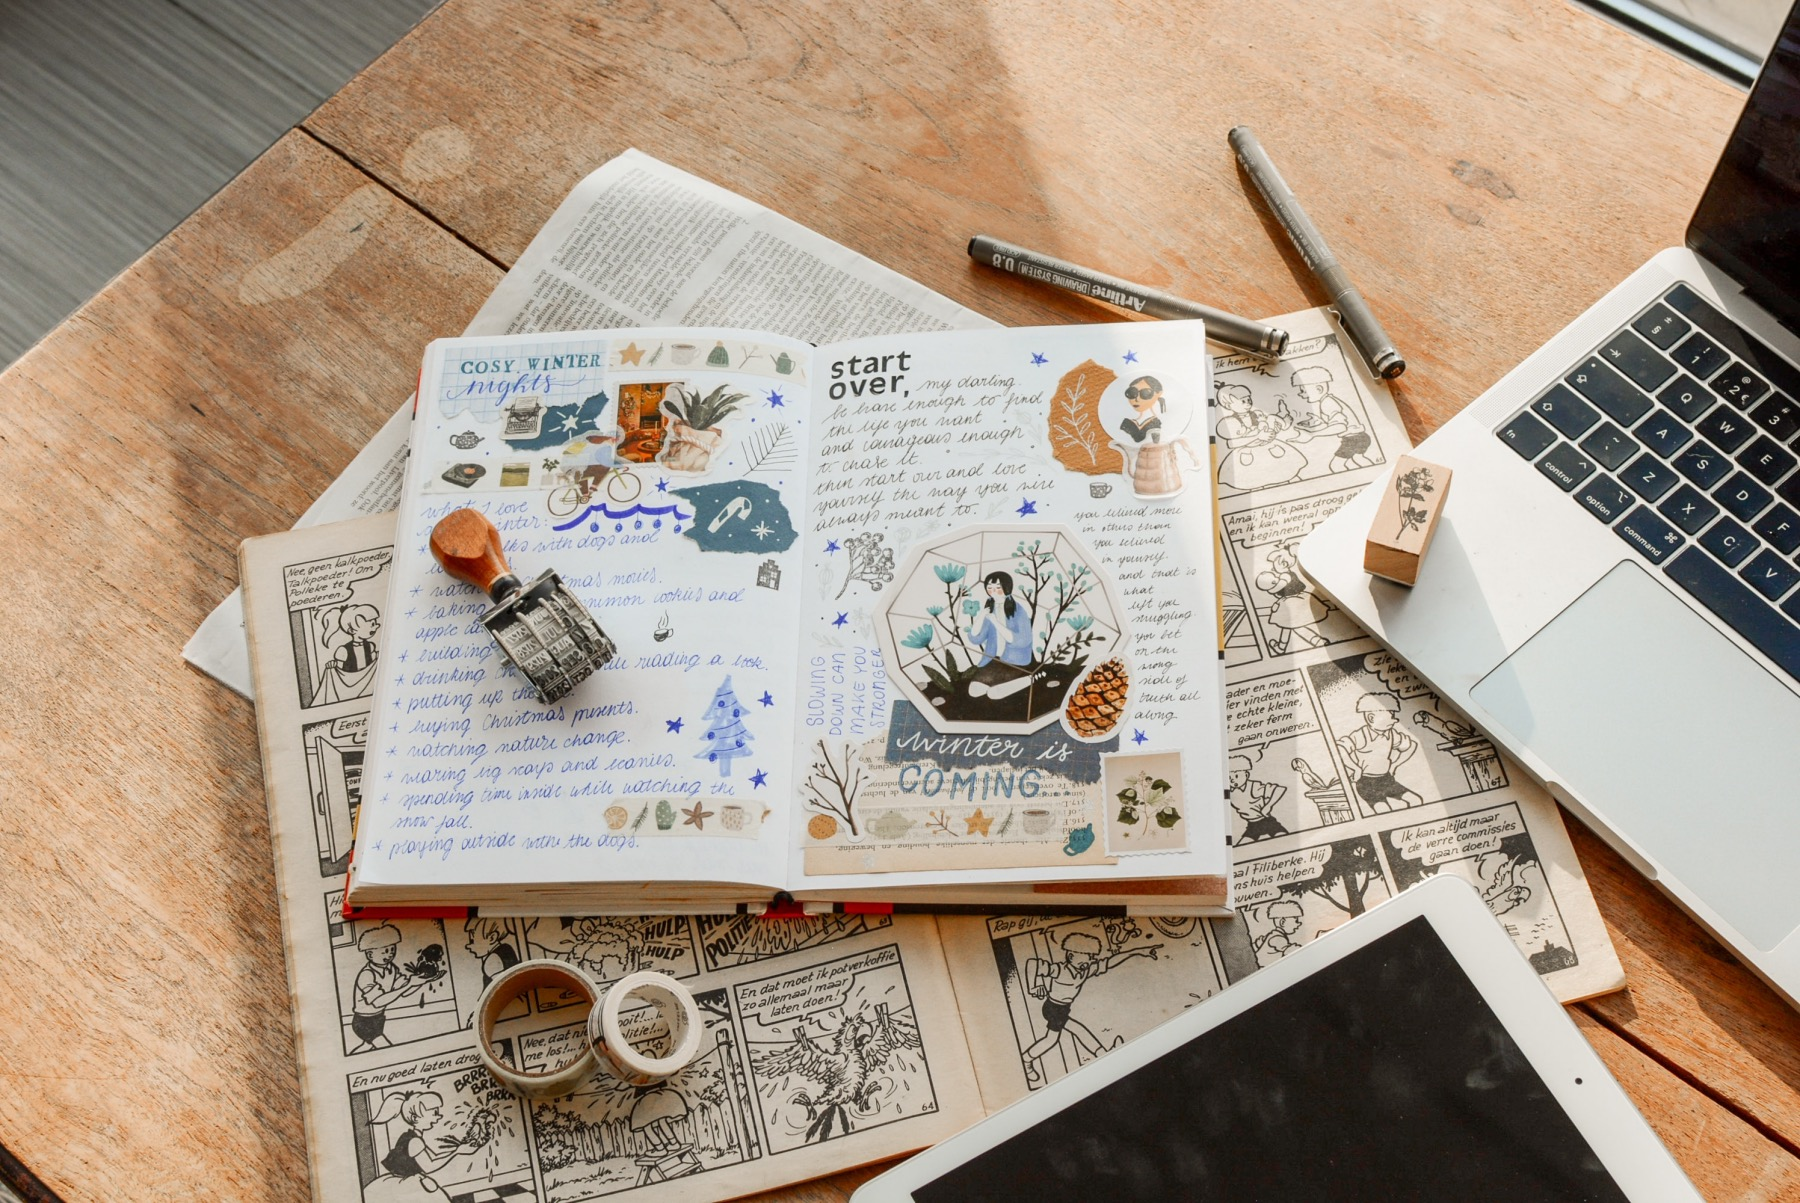 add washi tape and stickers to make a cool collage journal